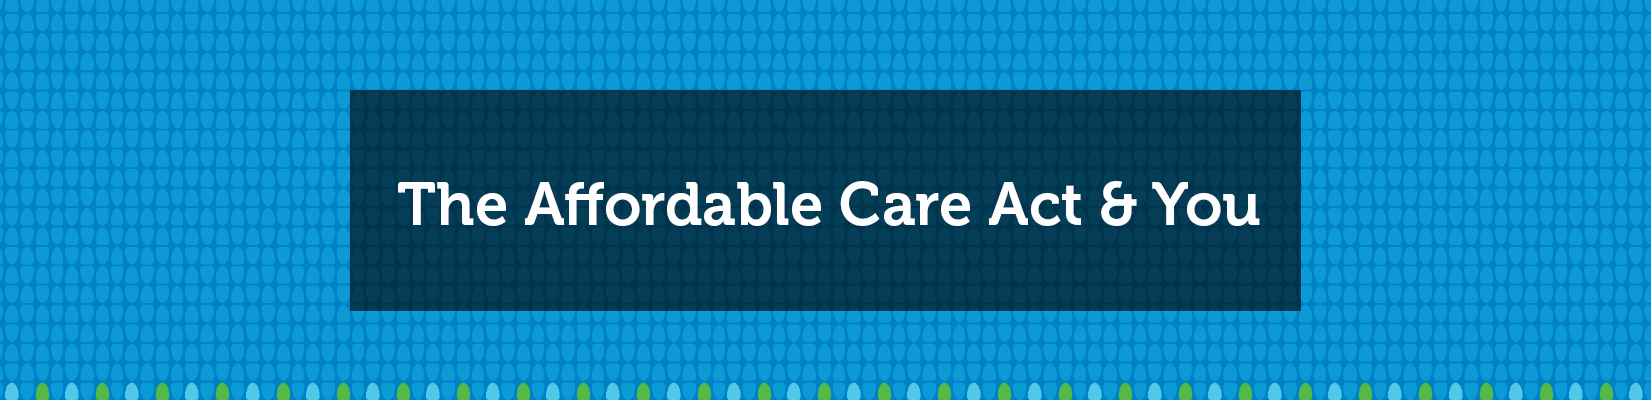 key components of affordable care act It's now or never, demanding house vote on health bill a comparison of the amended bill with key components of the affordable care act.